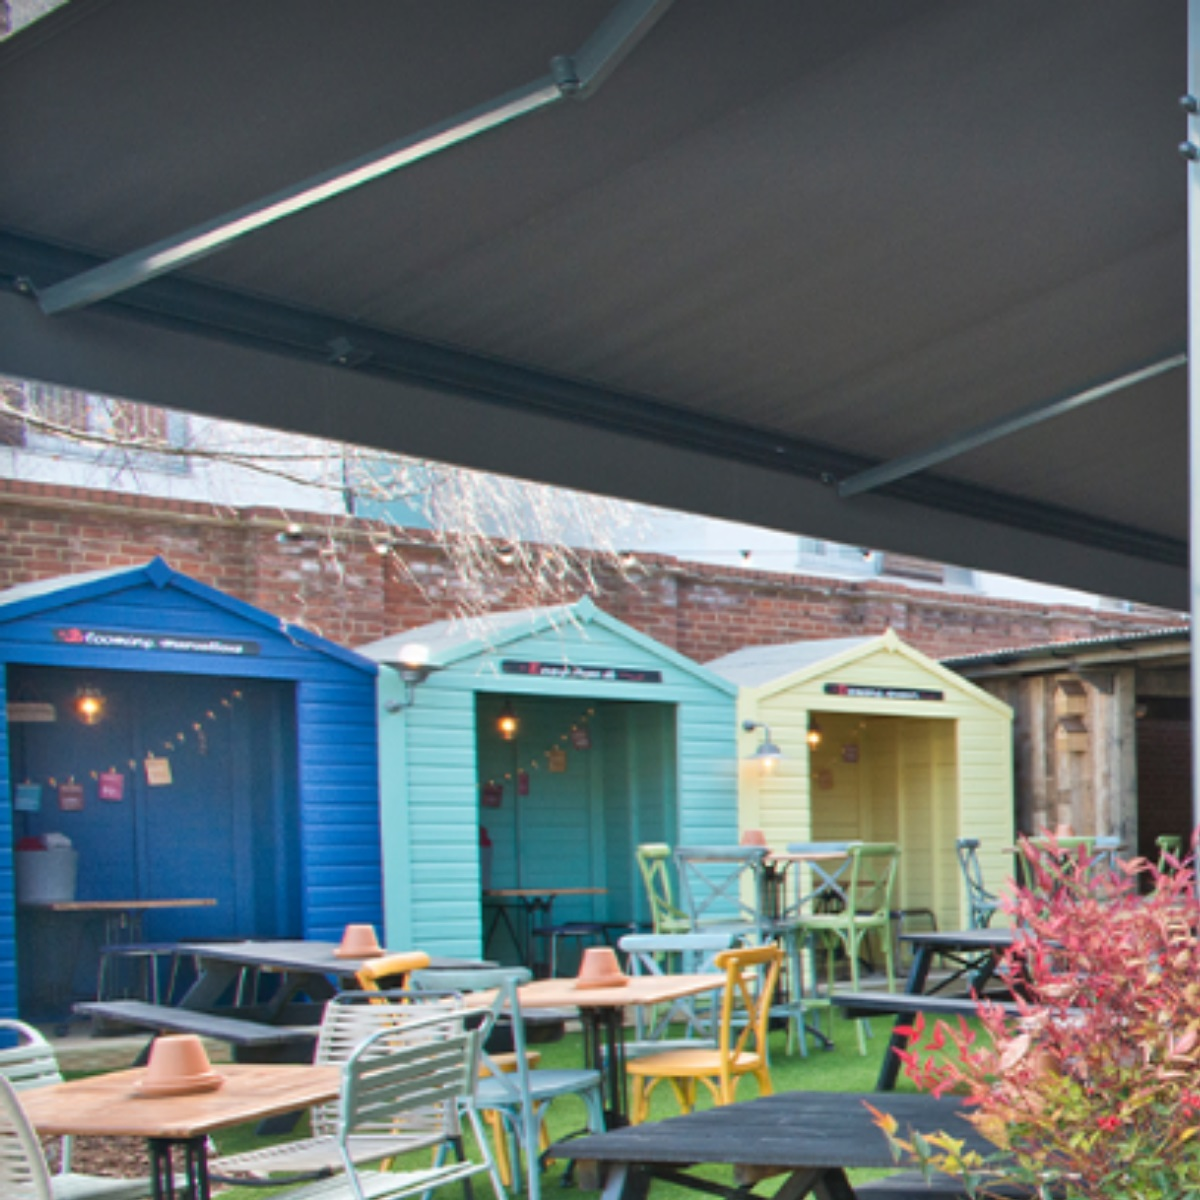 Brightly coloured wooden cabins that look like beach huts in a pub garden for people to sit in undercover